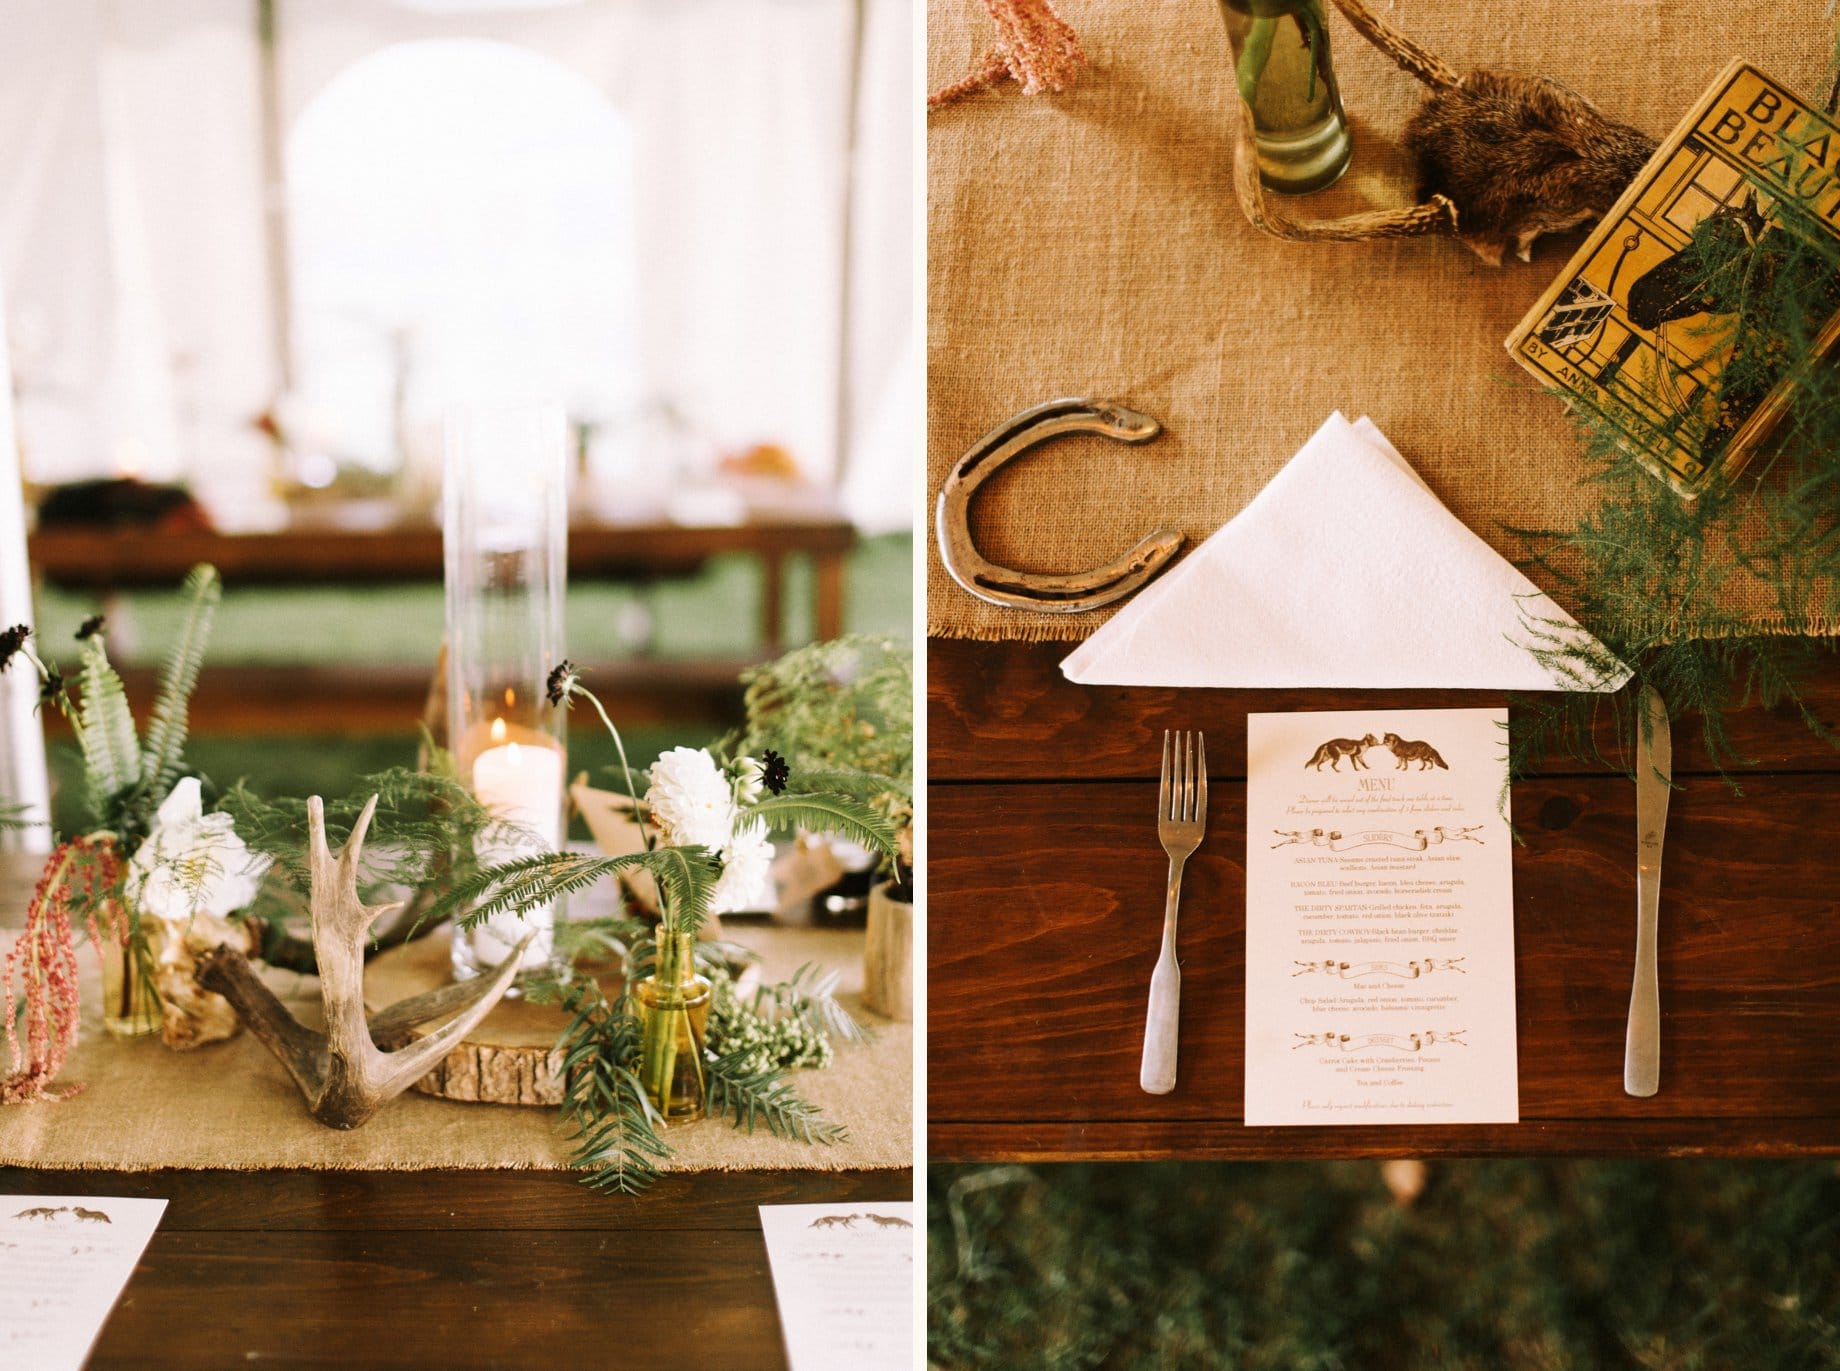 equestrian wedding decor